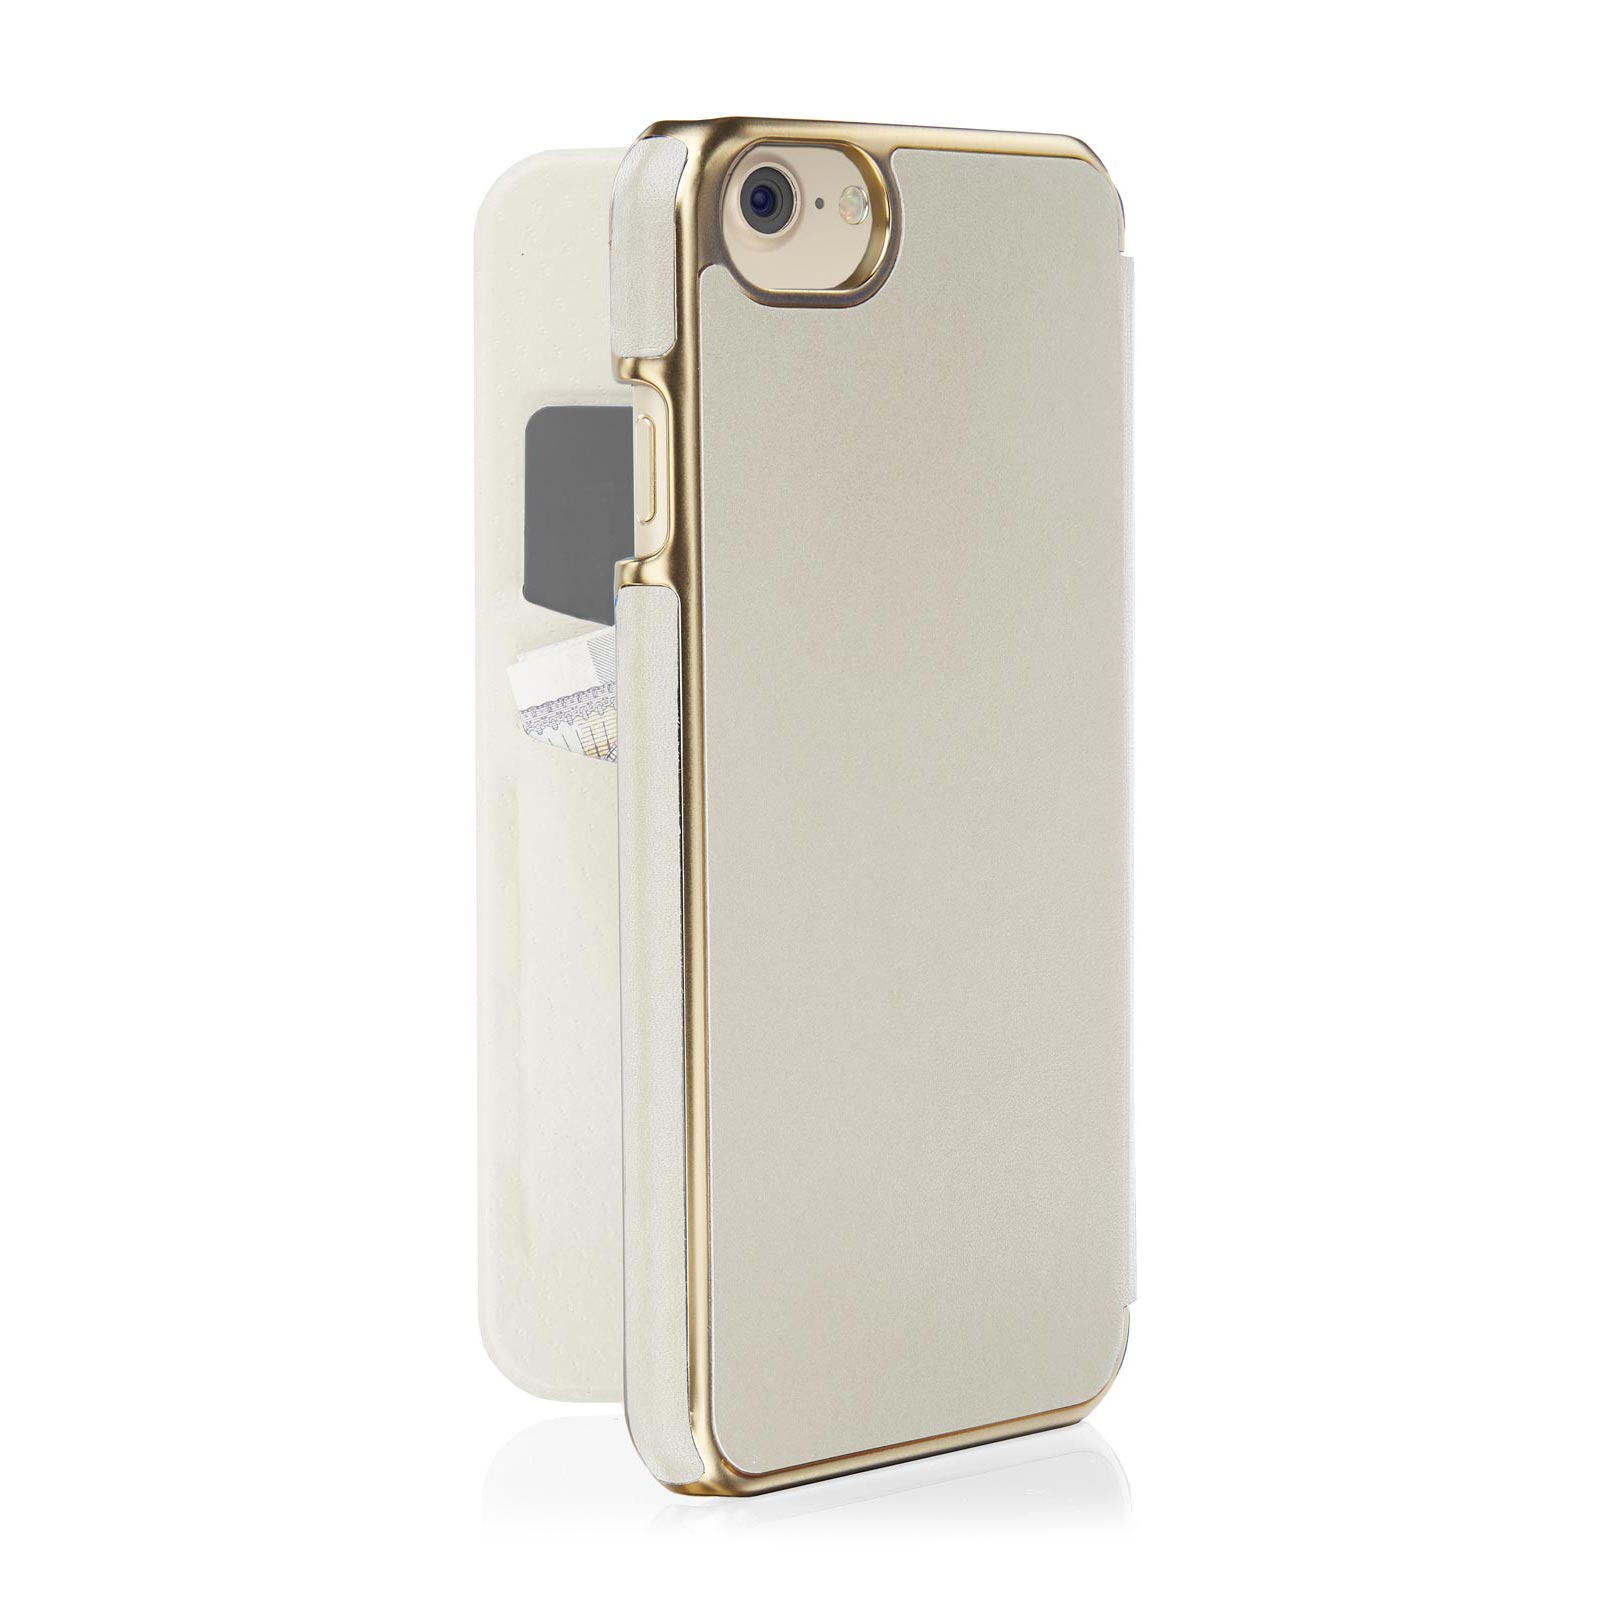 new products e6dd8 b4abd iPhone 8 Slim Wallet Case - Ecru (Also Fits iPhone 6/6S/7)